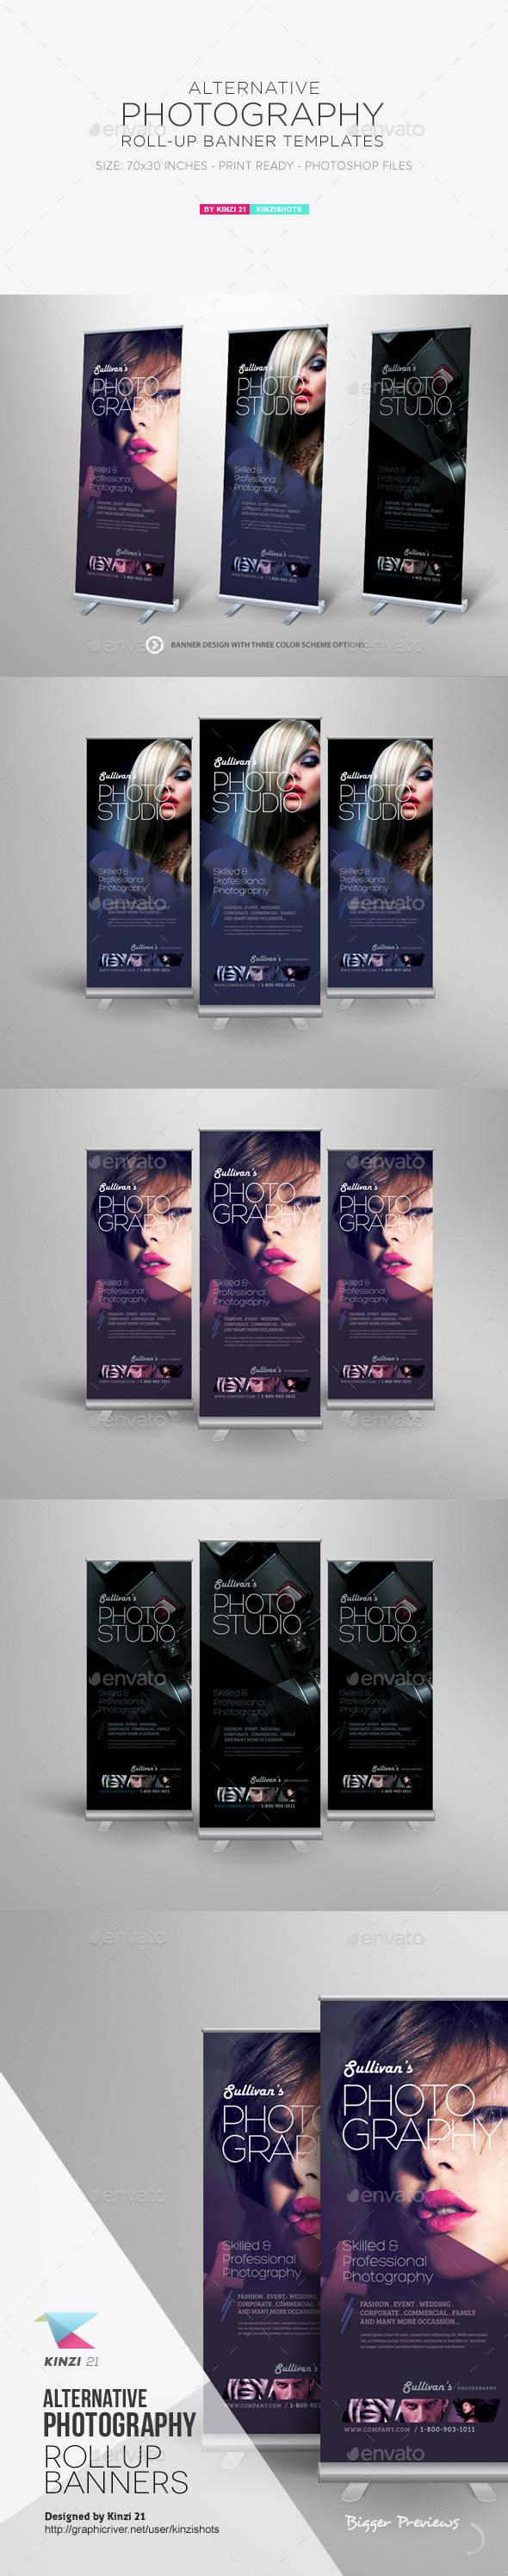 GraphicRiver Alternative Photography Roll-up Banners 11761218